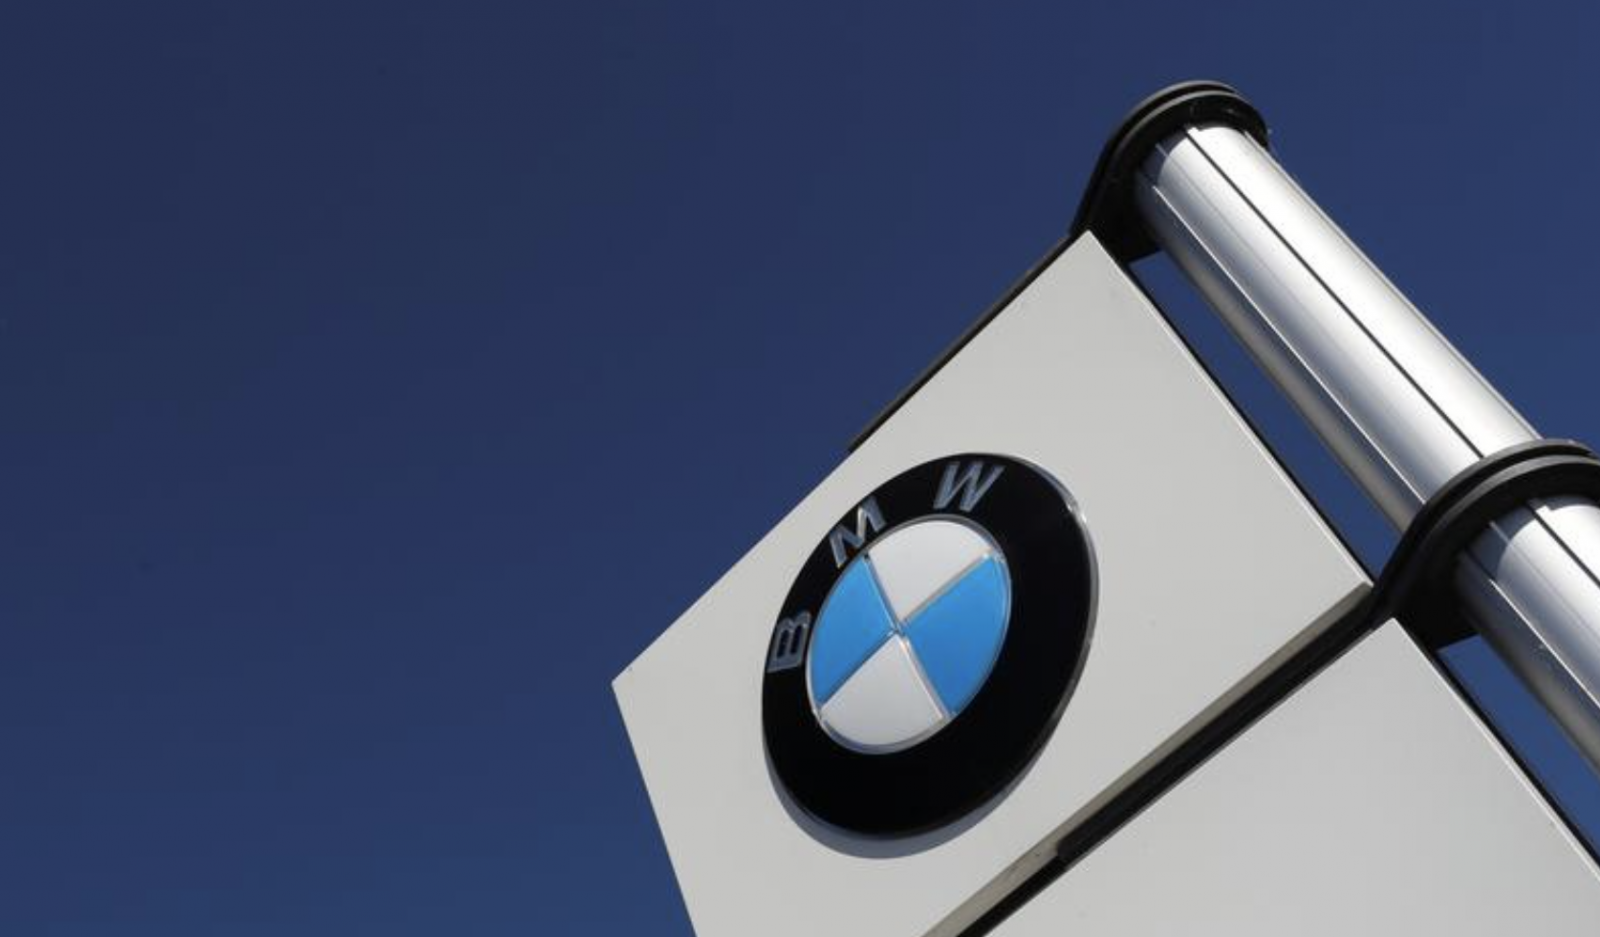 BMW Says 2020 Cash Flow Exceeded Market Expectations